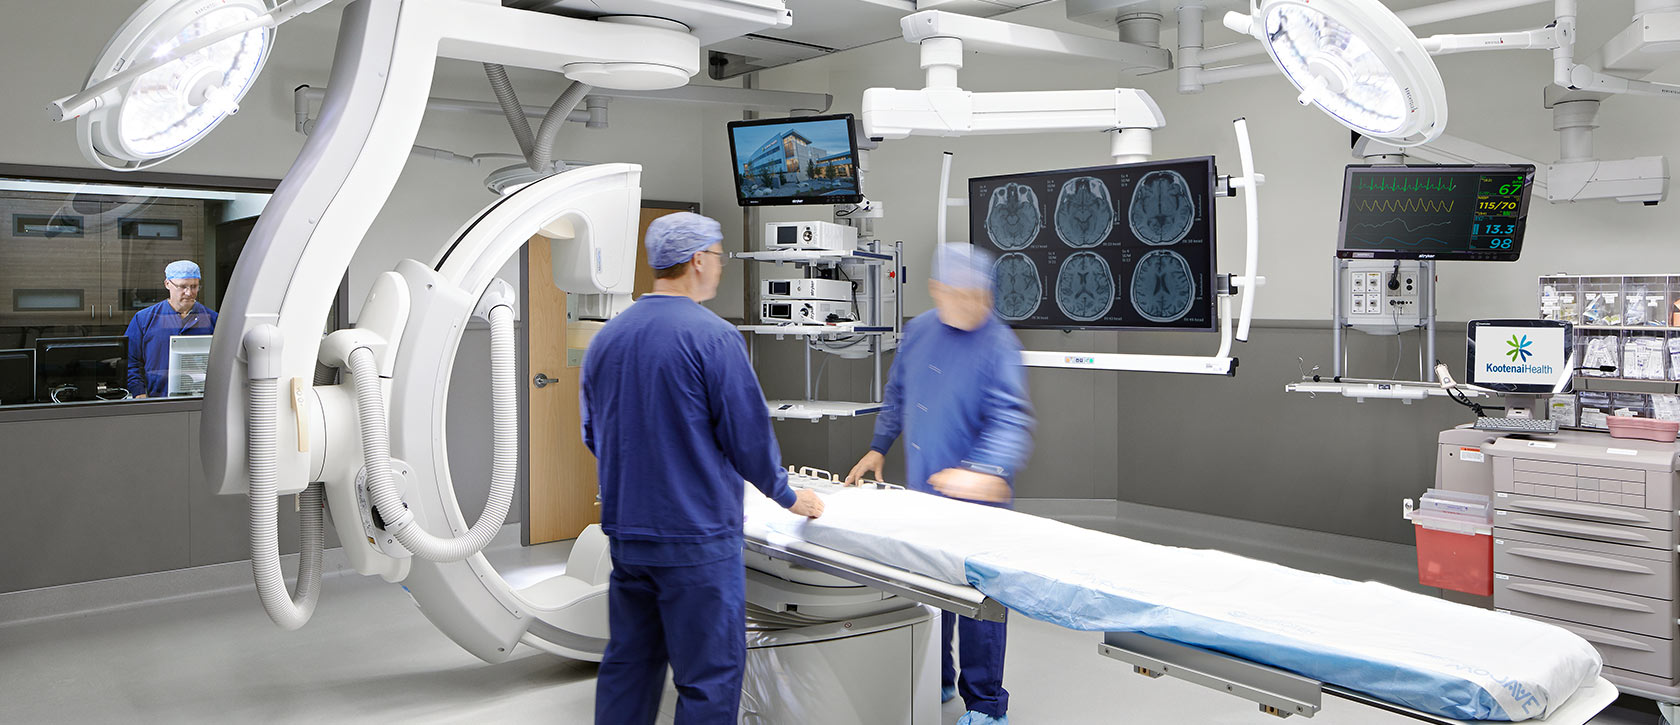 Planning and Constructing a Hybrid Operating Room: Lessons